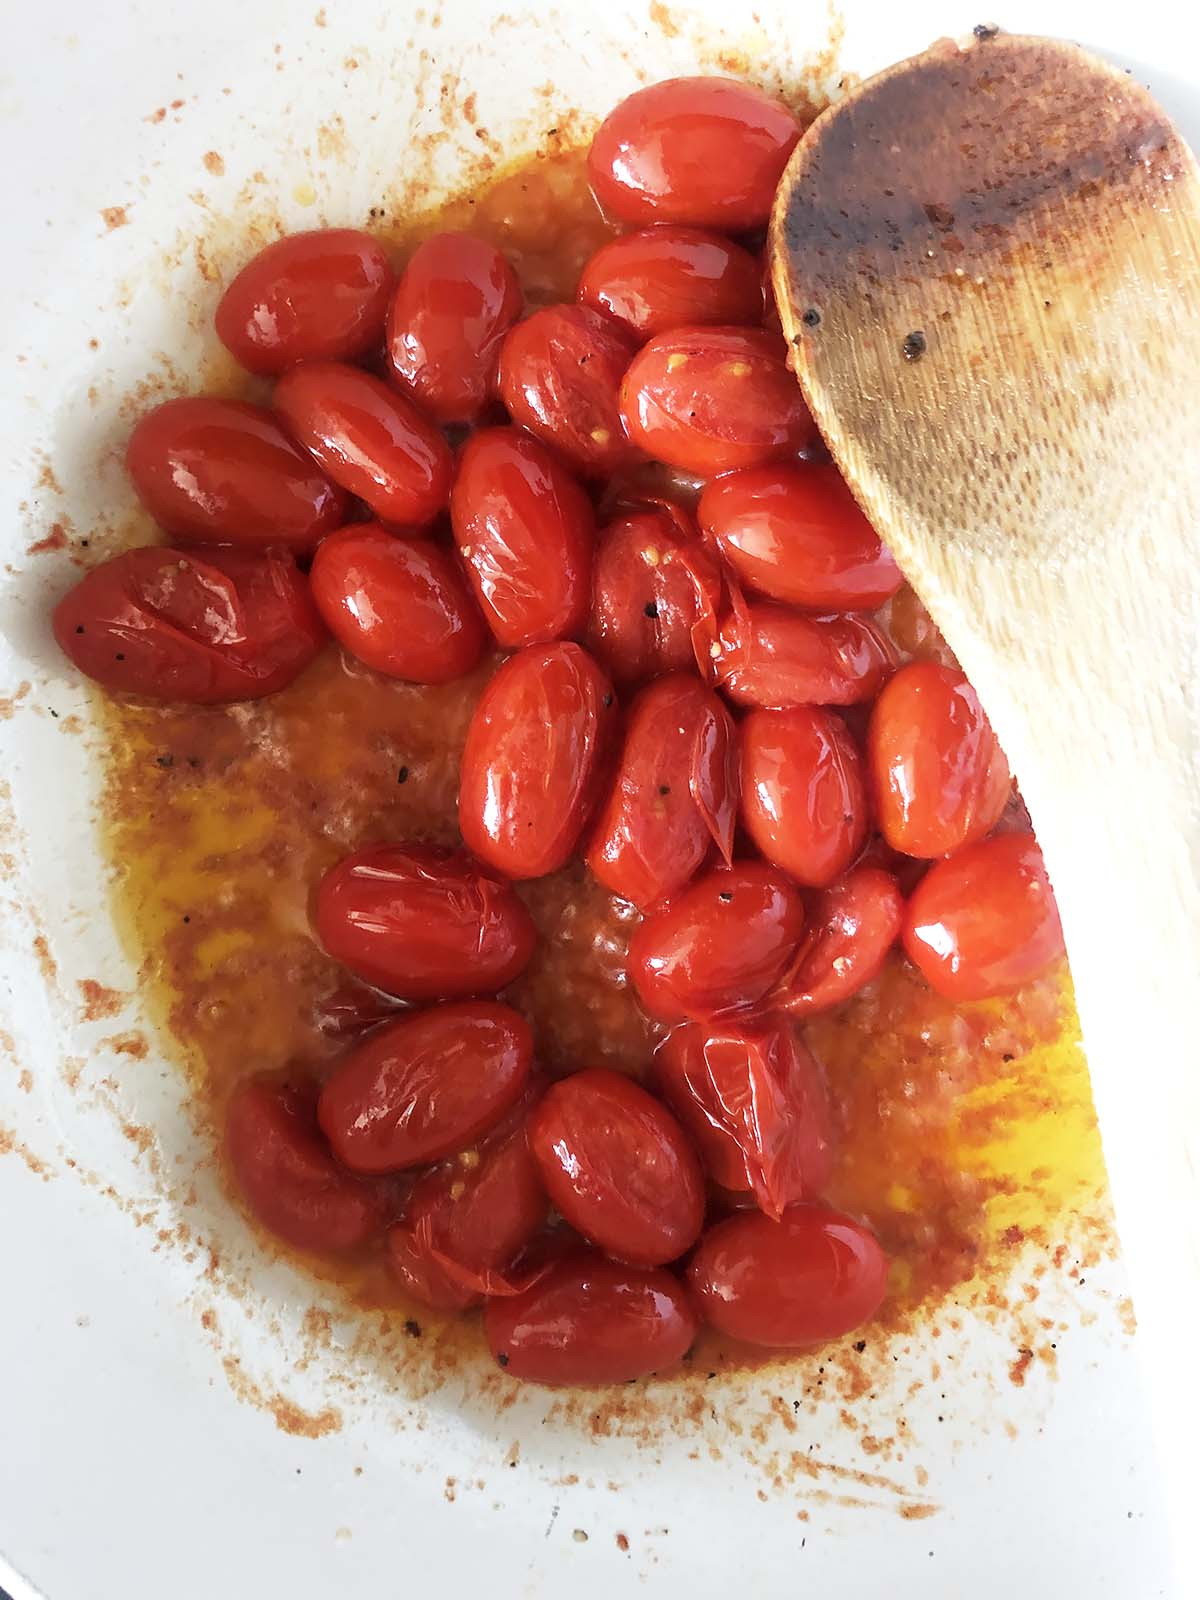 tomatoes cooking in a pan